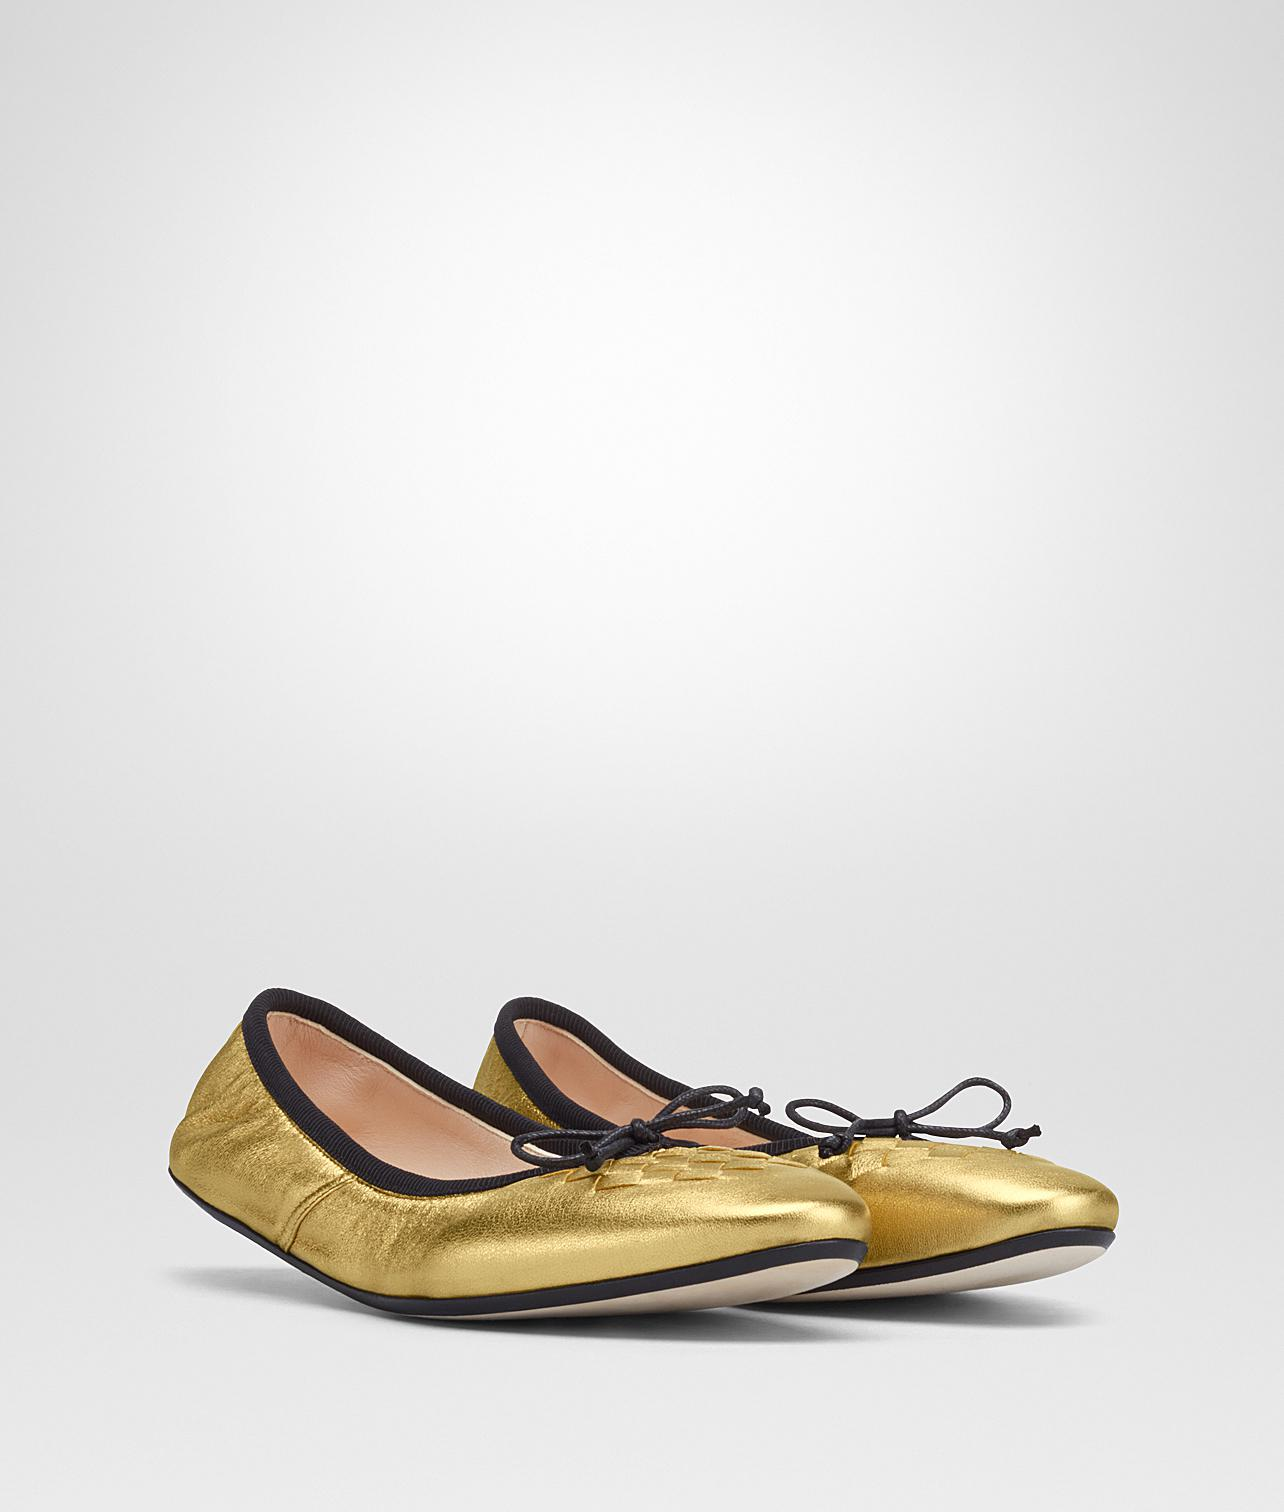 light gold Intrecciato nappa lame picnic ballerina - Metallic Bottega Veneta